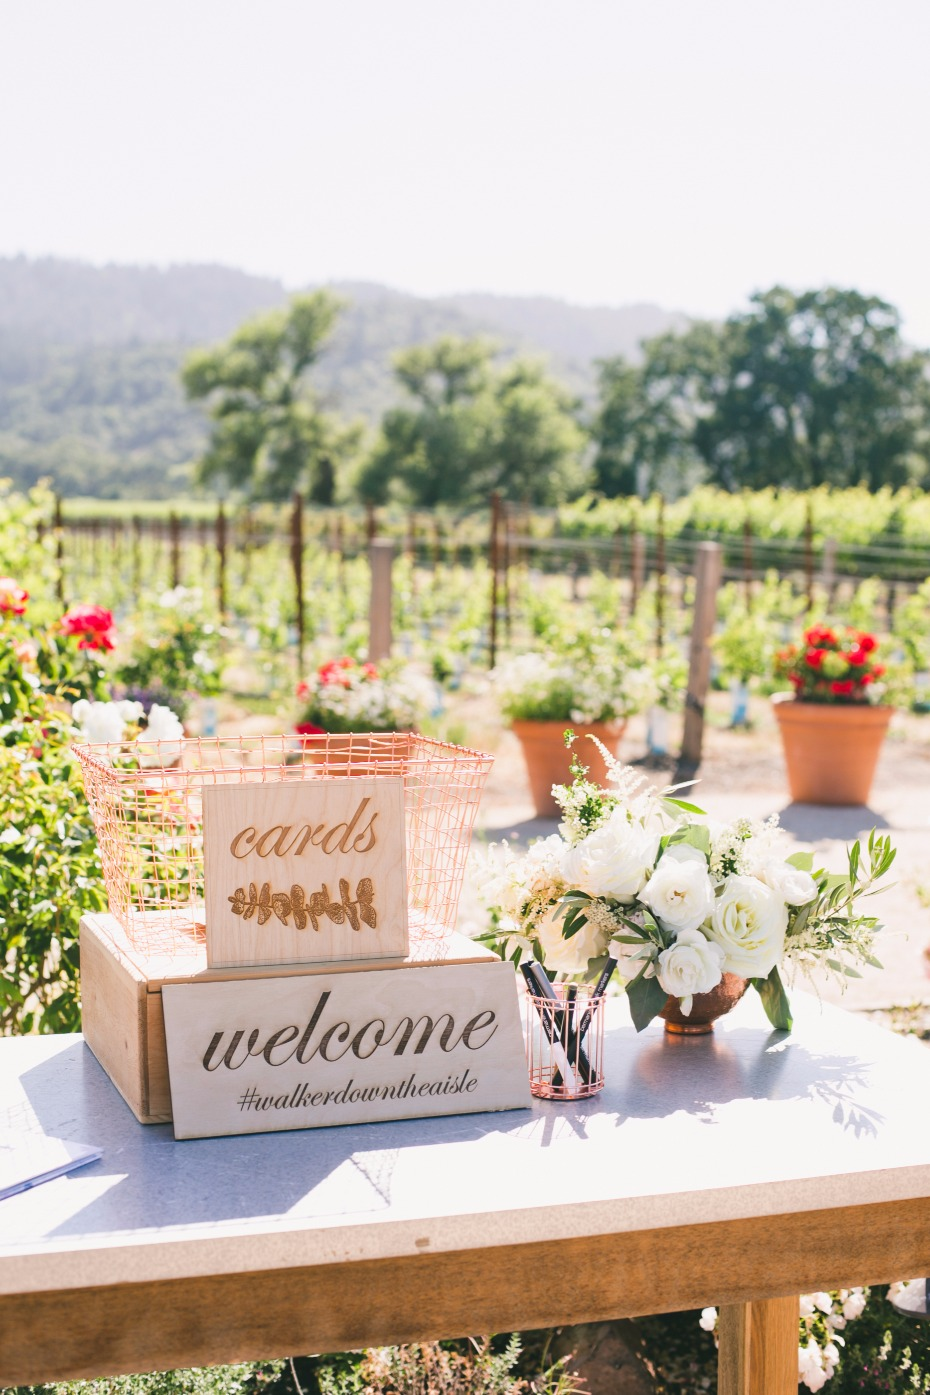 Welcome table